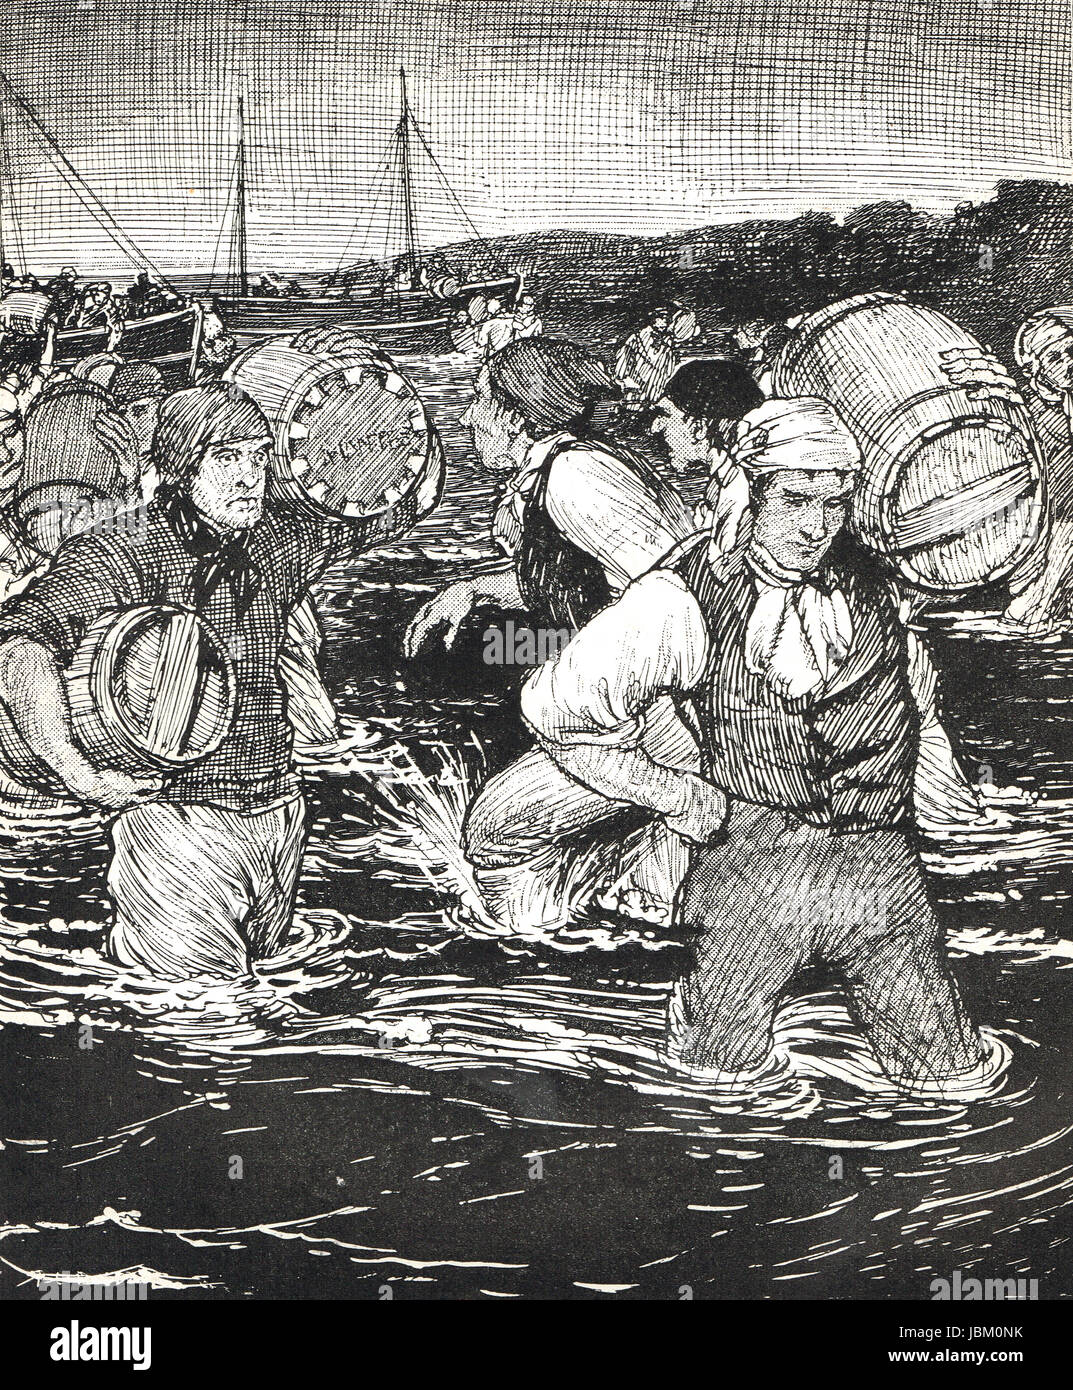 Smugglers at work, 1910 illustration - Stock Image